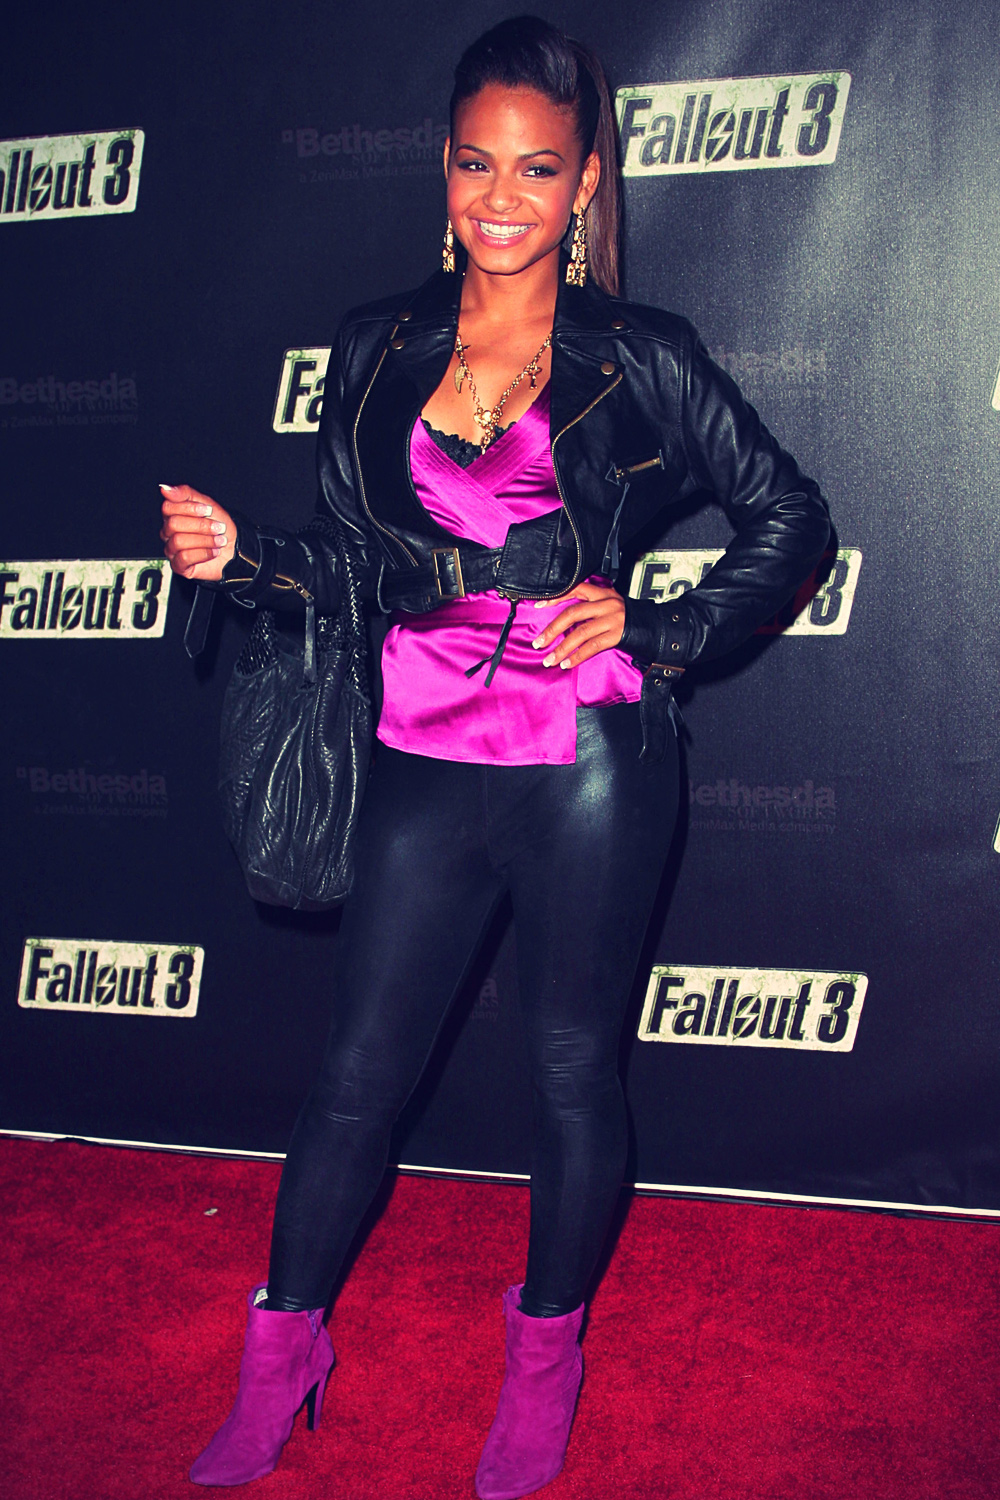 Christina Milian at launch Party for Fallout 3